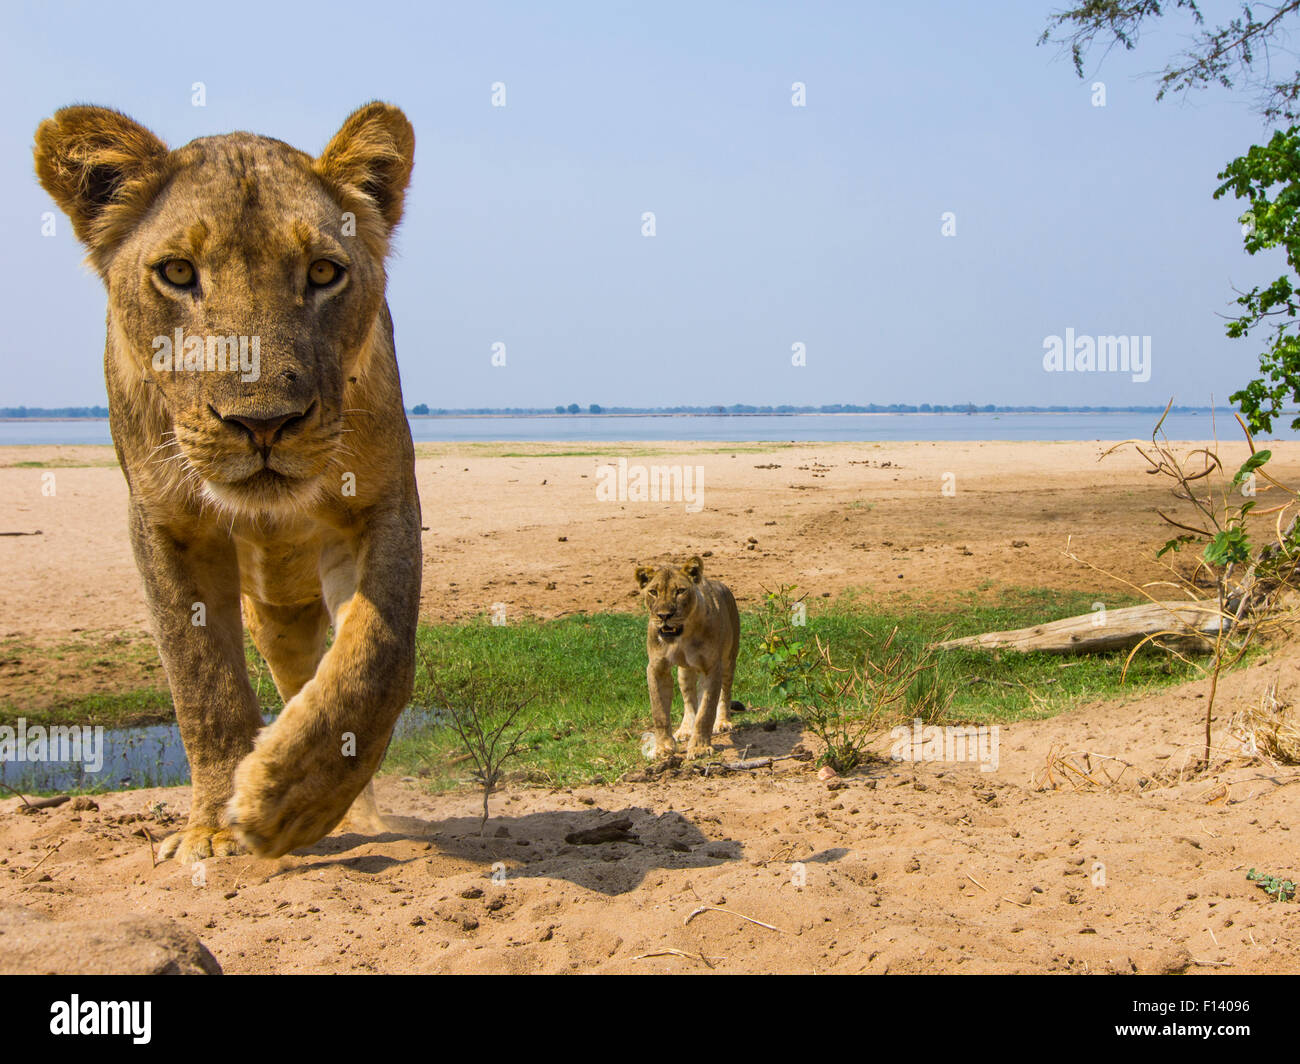 Lionesses (Panthera leo) in habitat, Lower Zambezi National Park, Zambia. - Stock Image